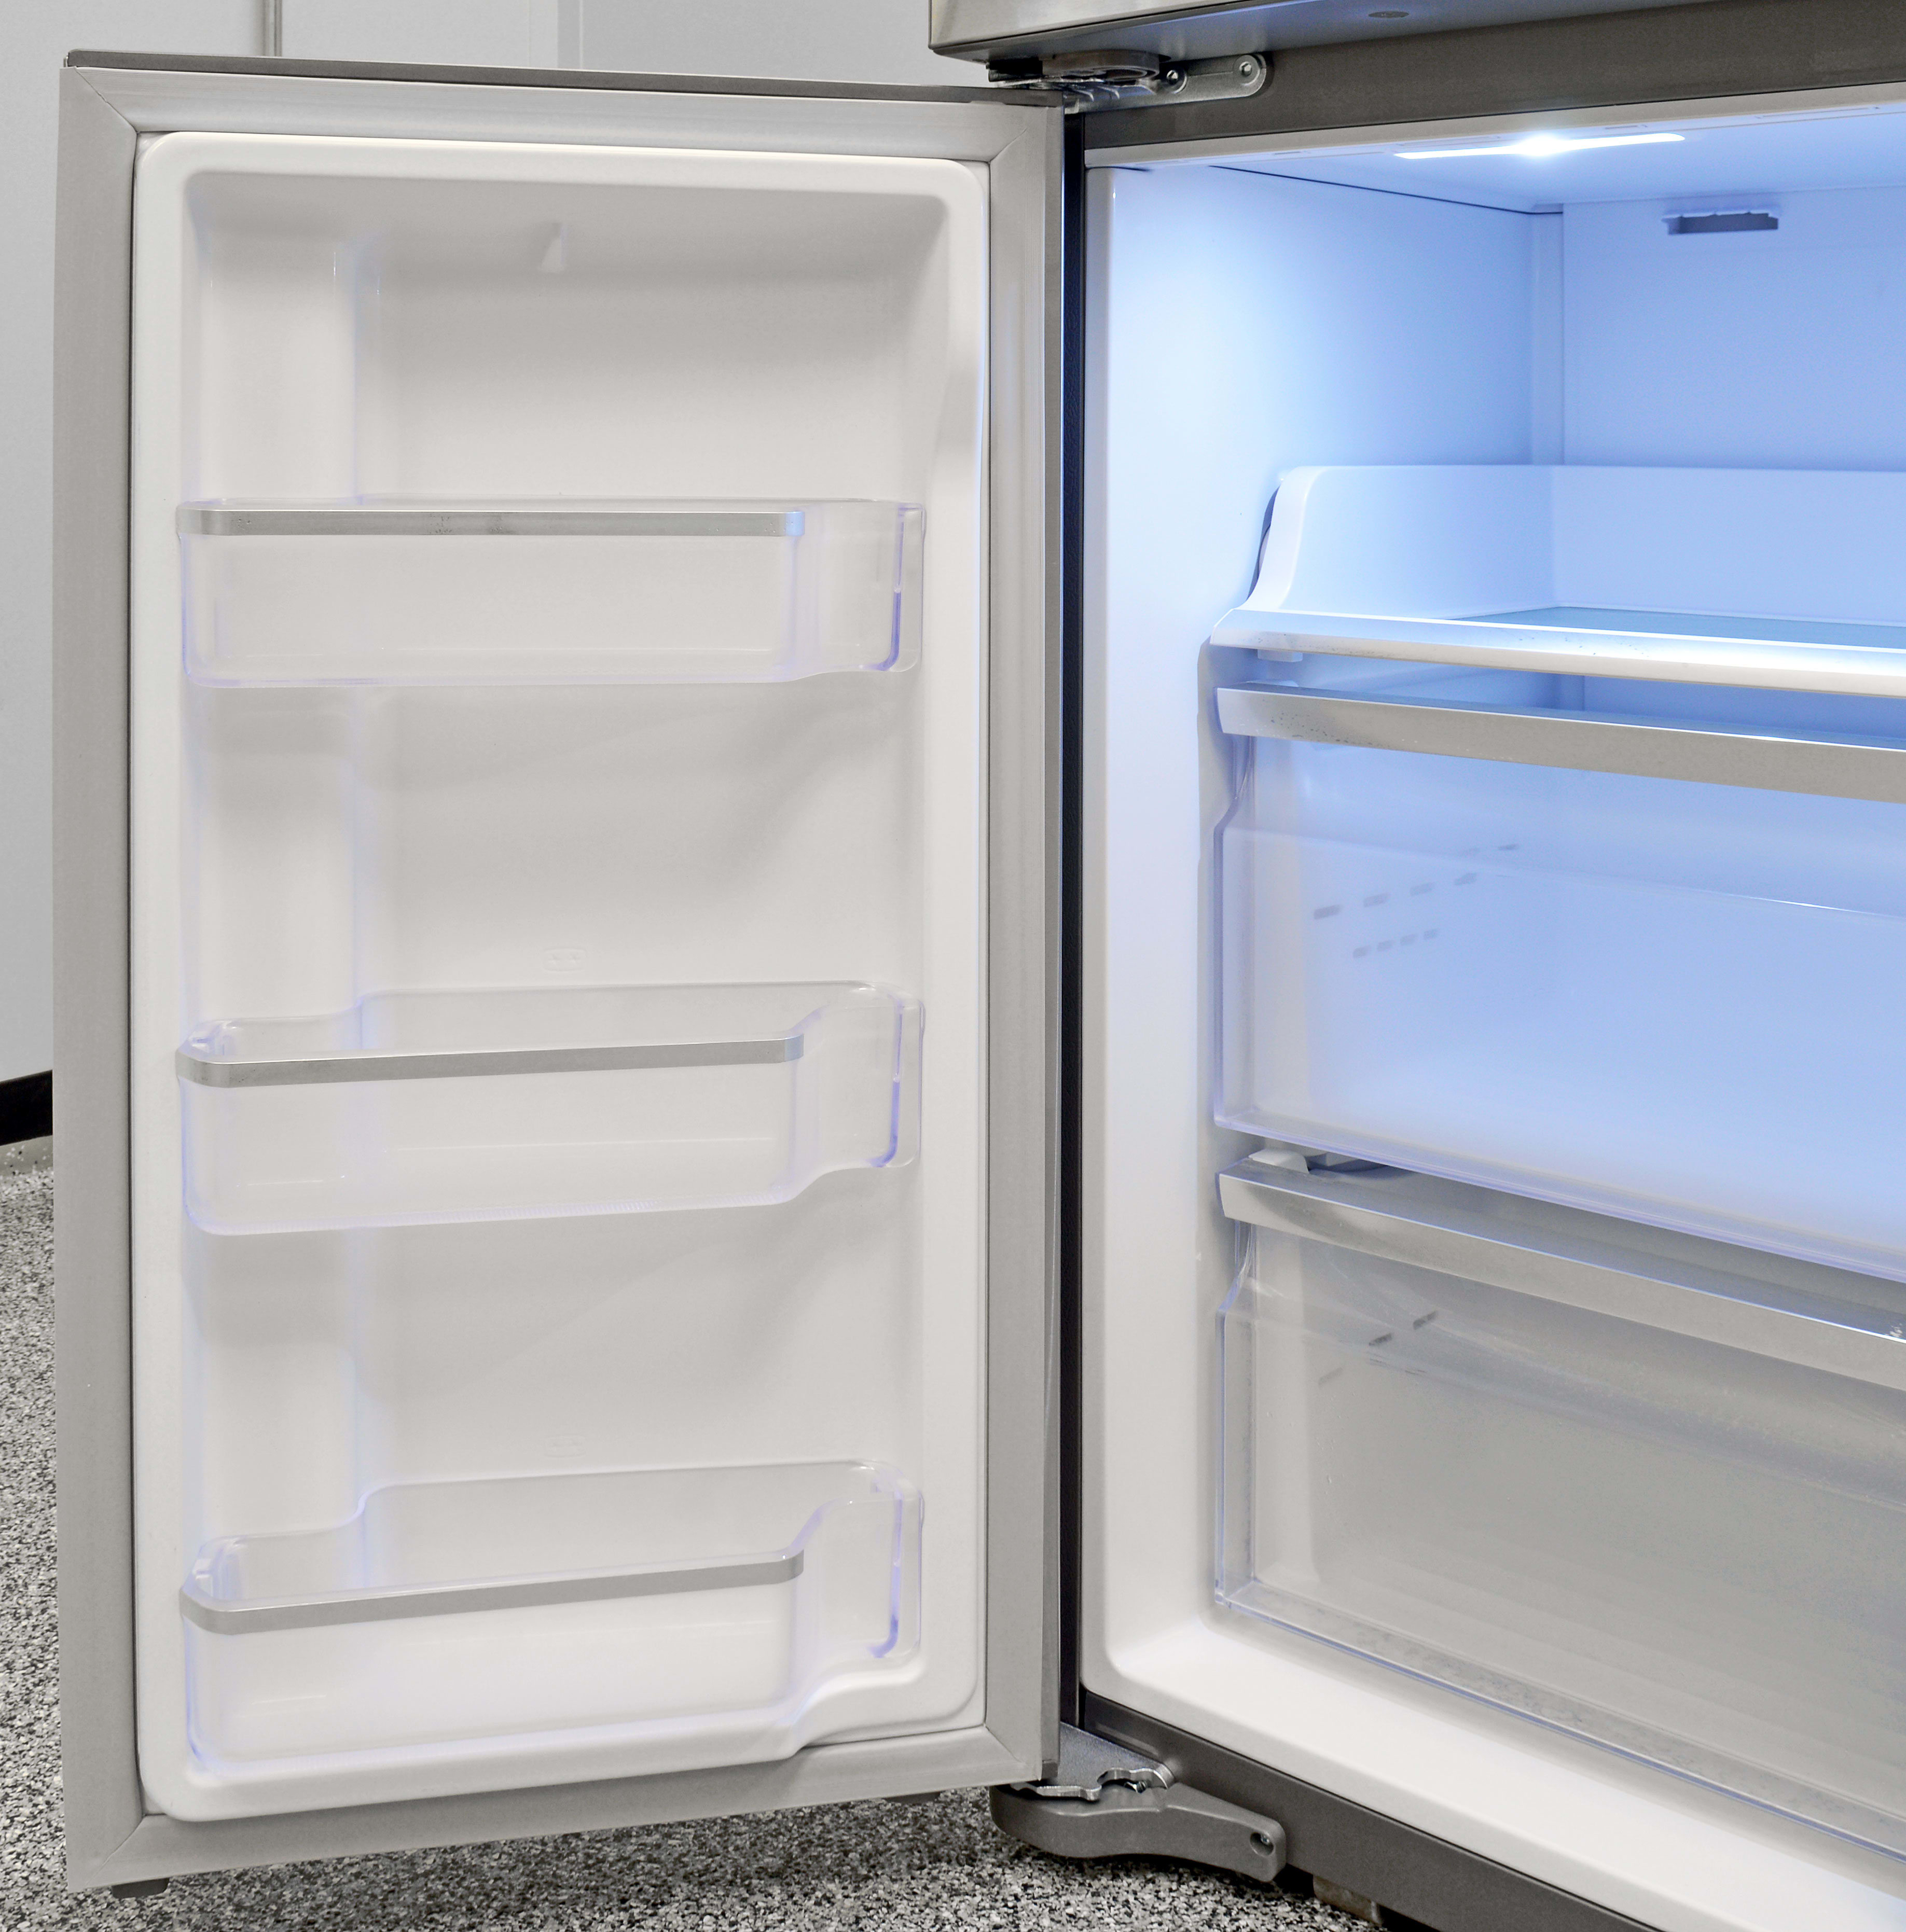 Three small fixed shelves offer supplemental freezer storage in the Samsung RF23J9011SR.